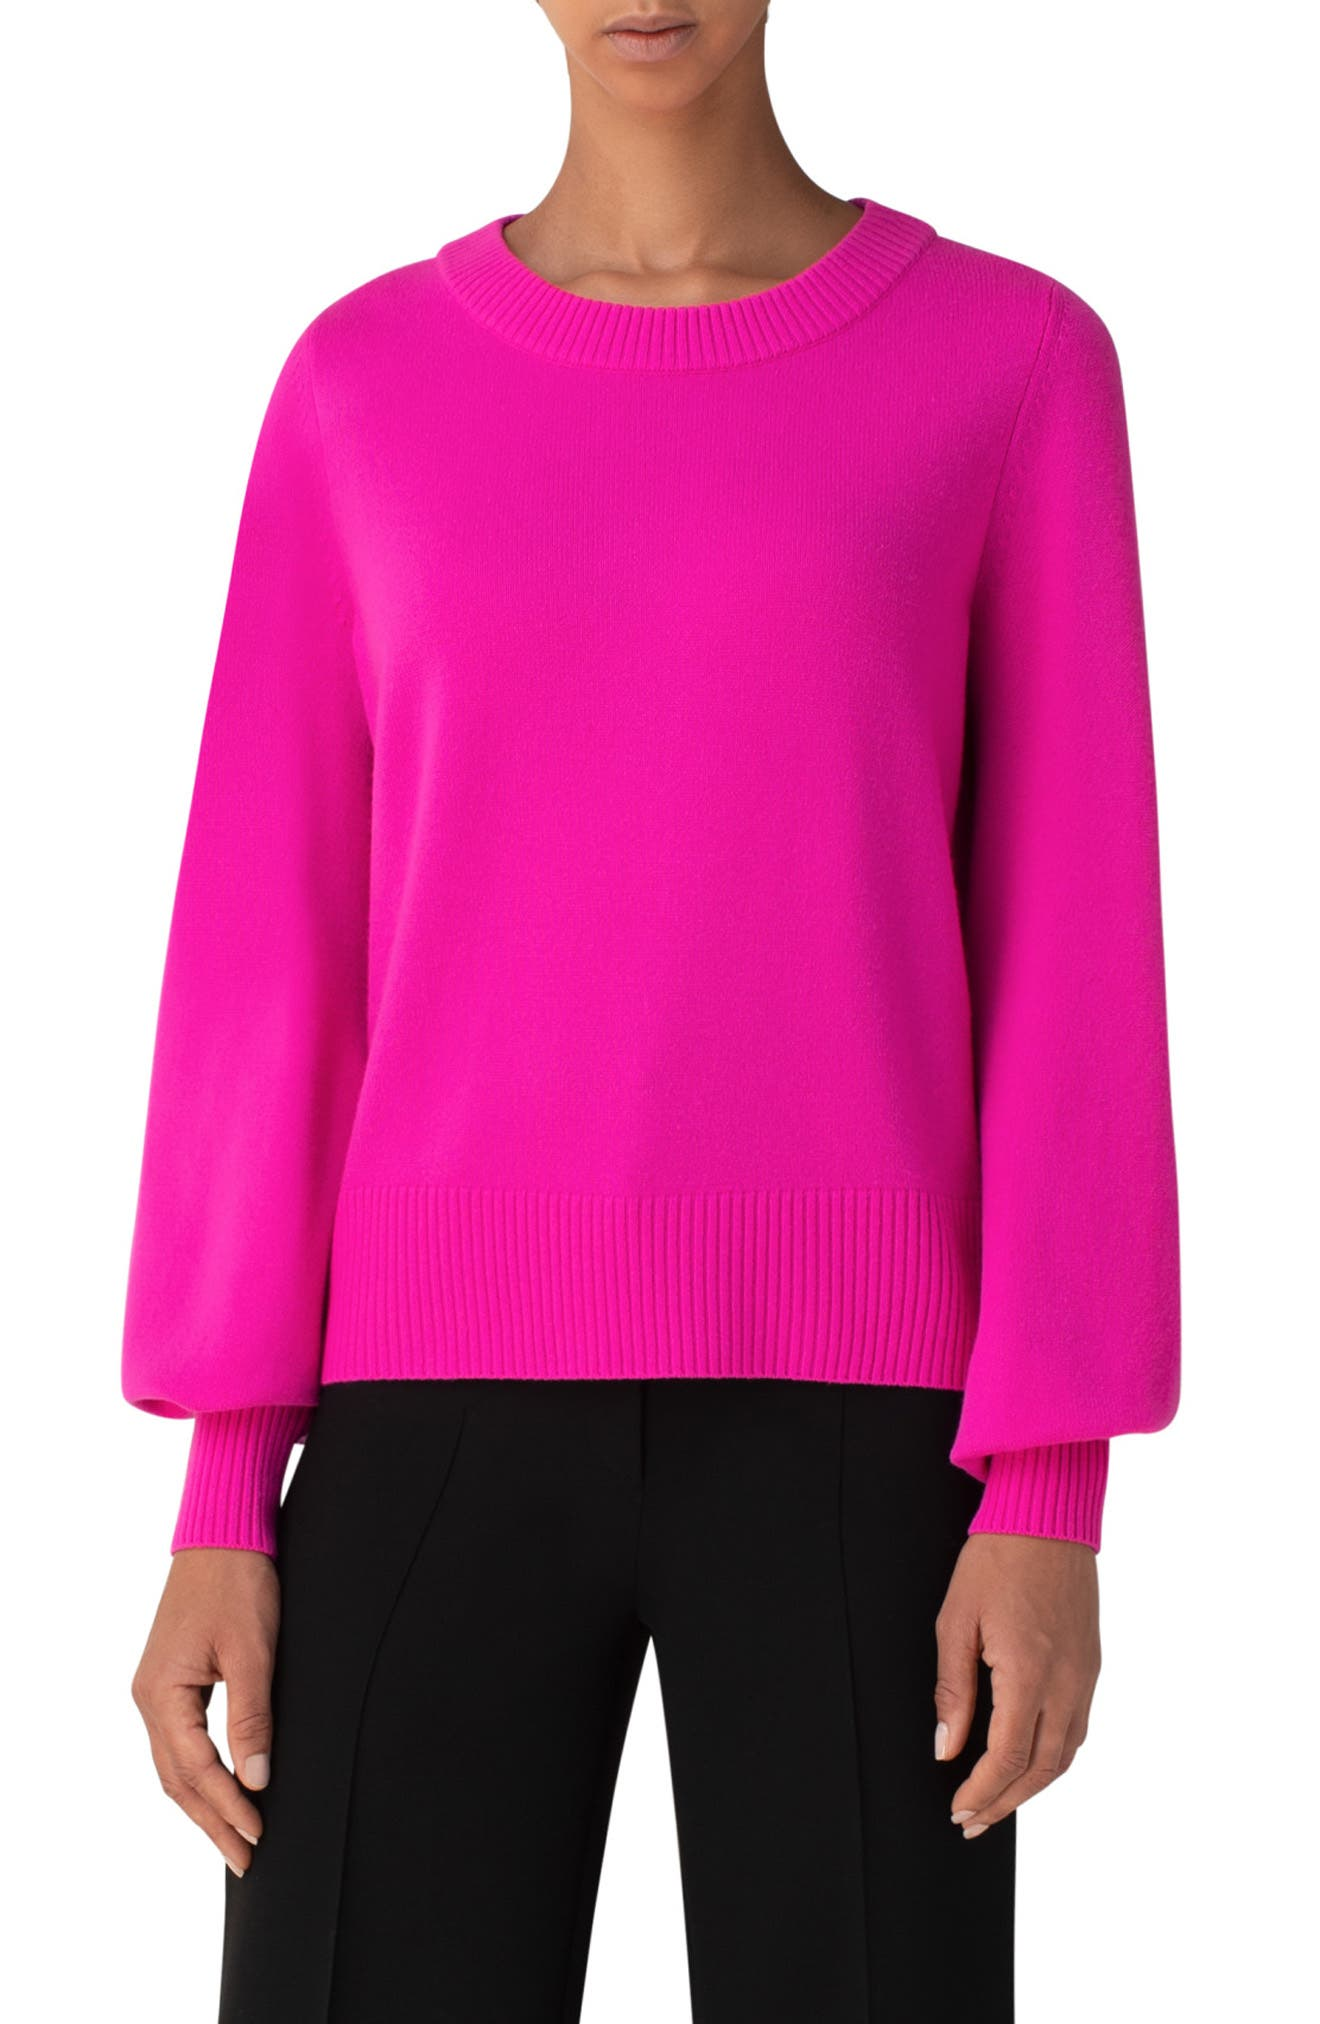 Fully fashioned bishop sleeves are a soft counterpoint to the vivid hue of this boxy crewneck pullover knit from a soft and cozy wool-cashmere blend. Style Name: Akris Punto Wool & Cashmere Sweater. Style Number: 6046440. Available in stores.